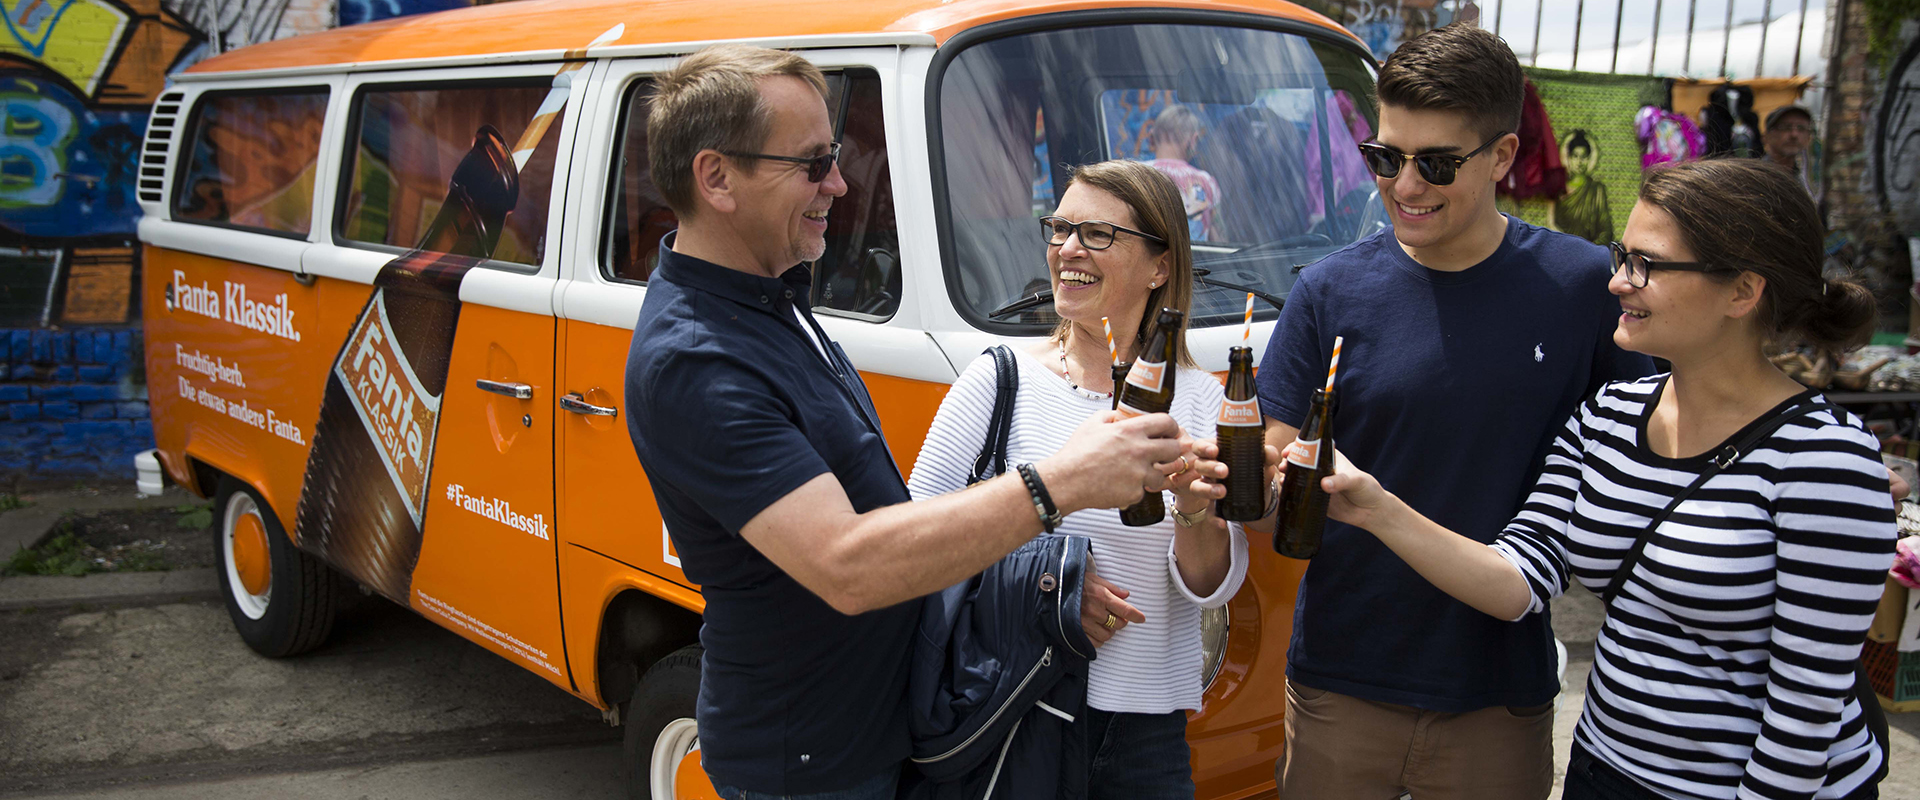 Fanta Klassik Sampling Tour 2016 am 19.6.2016 in Berlin. Foto: Gero Breloer für Coca-Cola GmbH